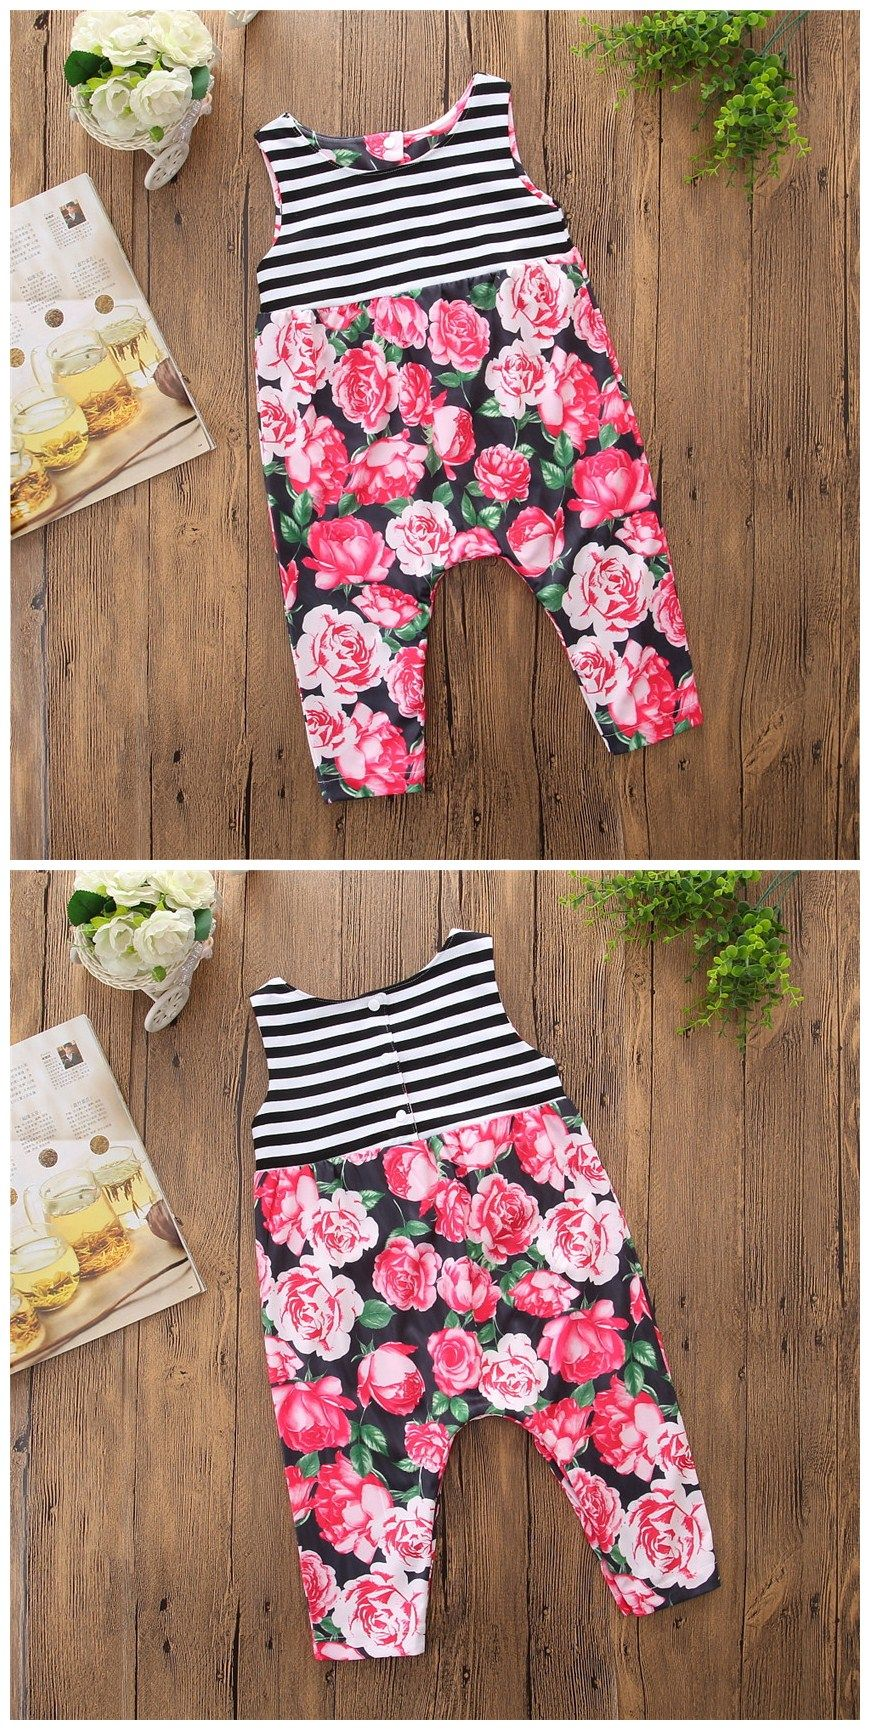 Newborn Infant Baby Girls Printed Save Our Planet Playsuit Outfit Clothes